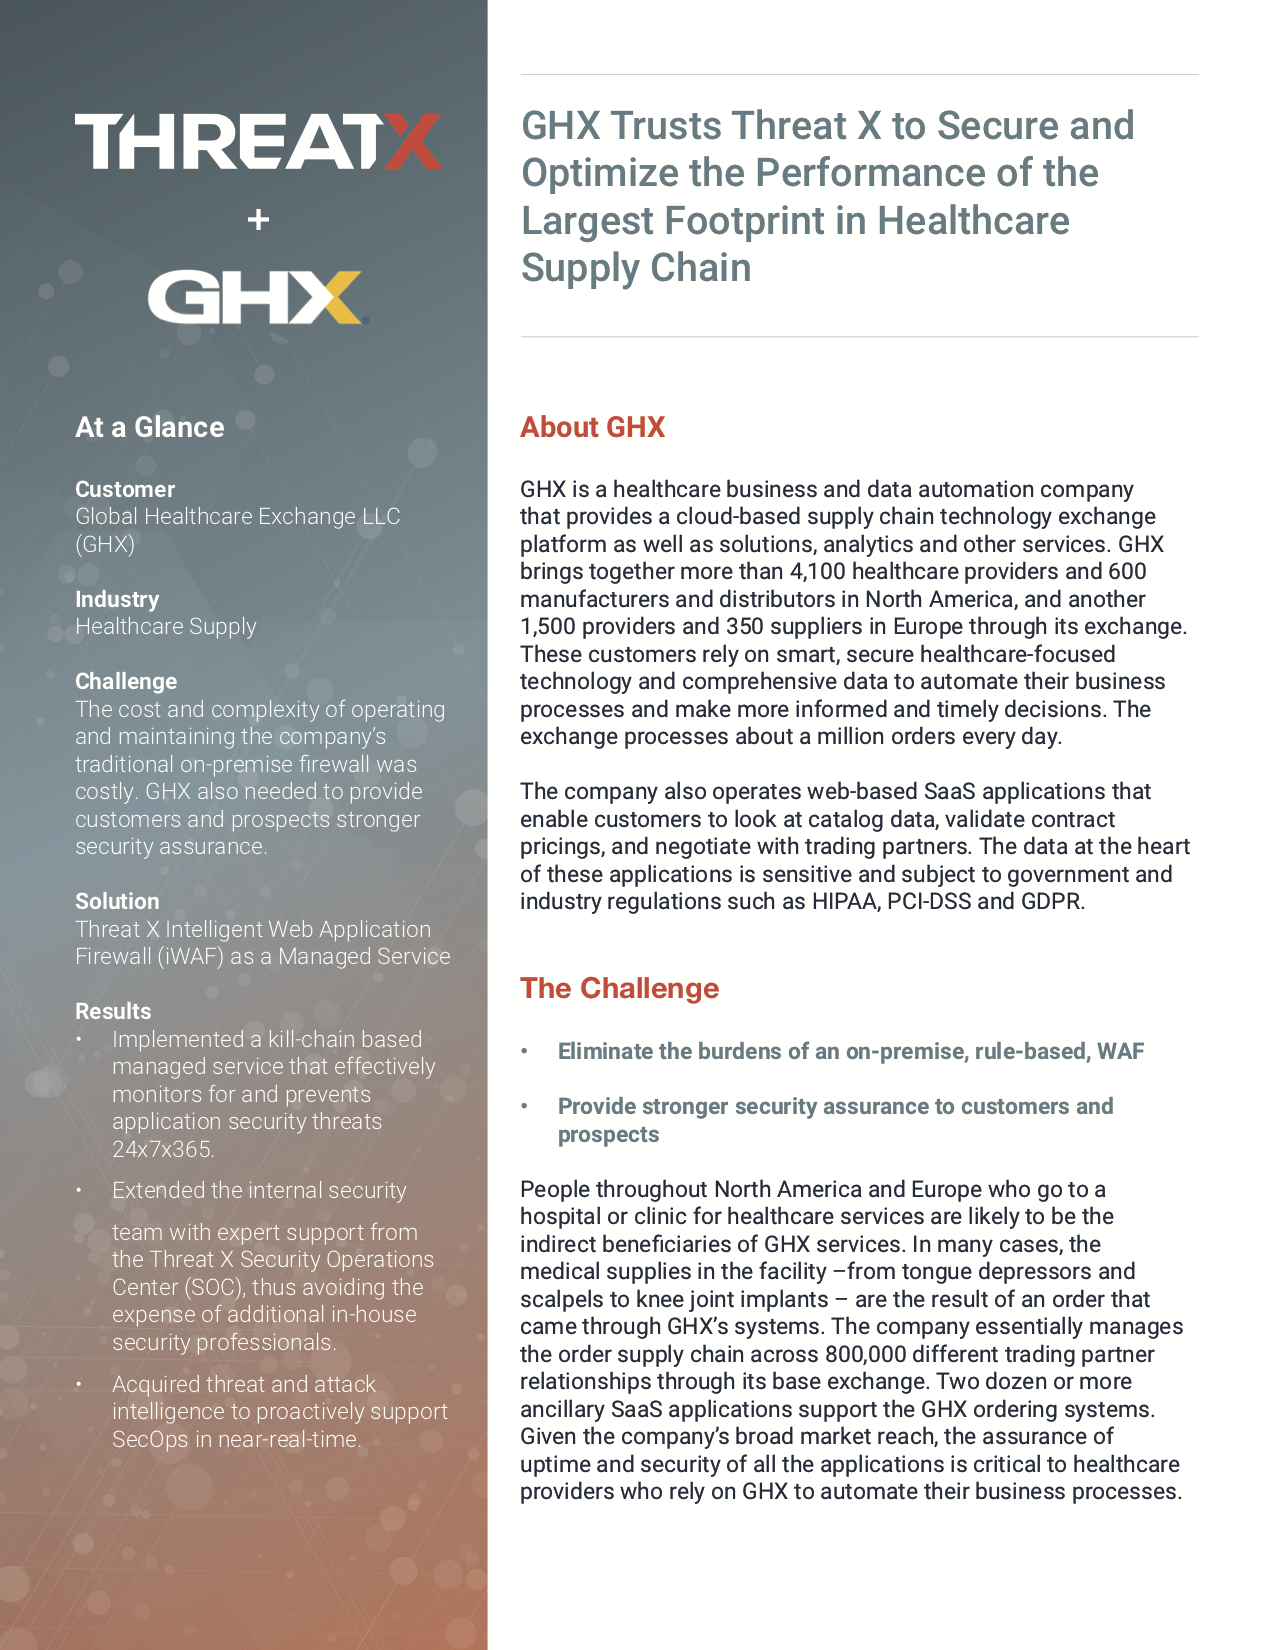 GHX Case Study Page 1